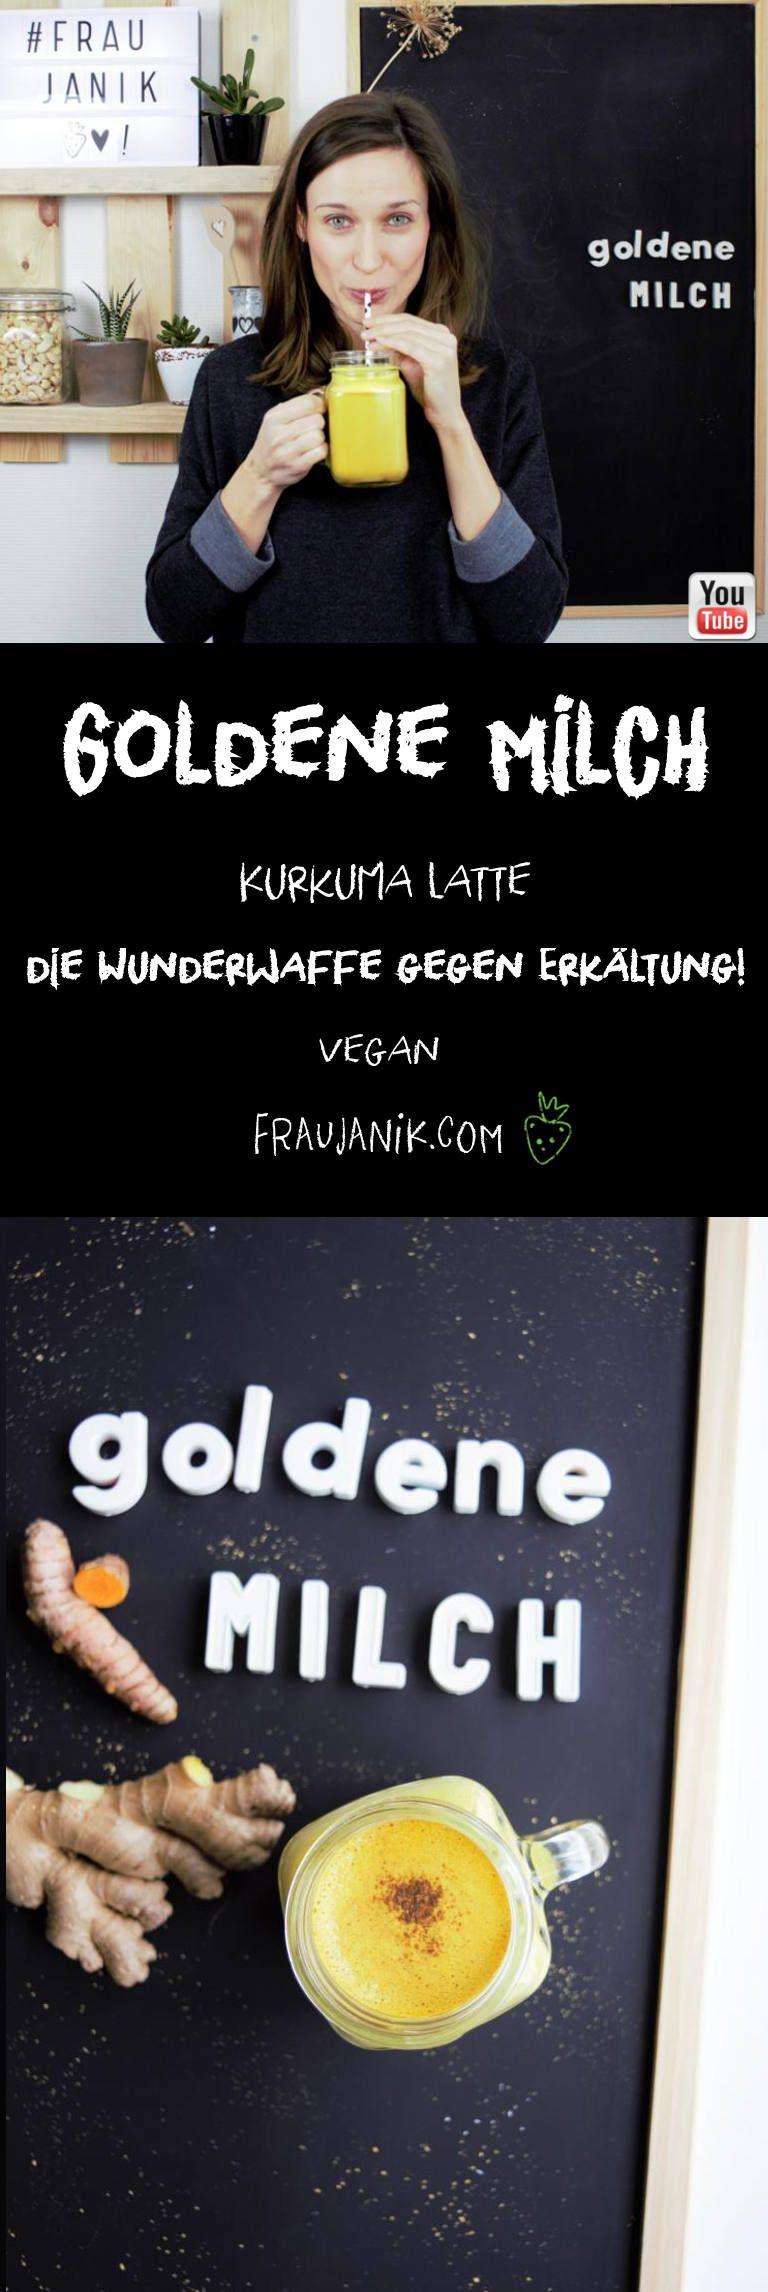 Goldene Milch | Vegans, Vegan lifestyle and Food